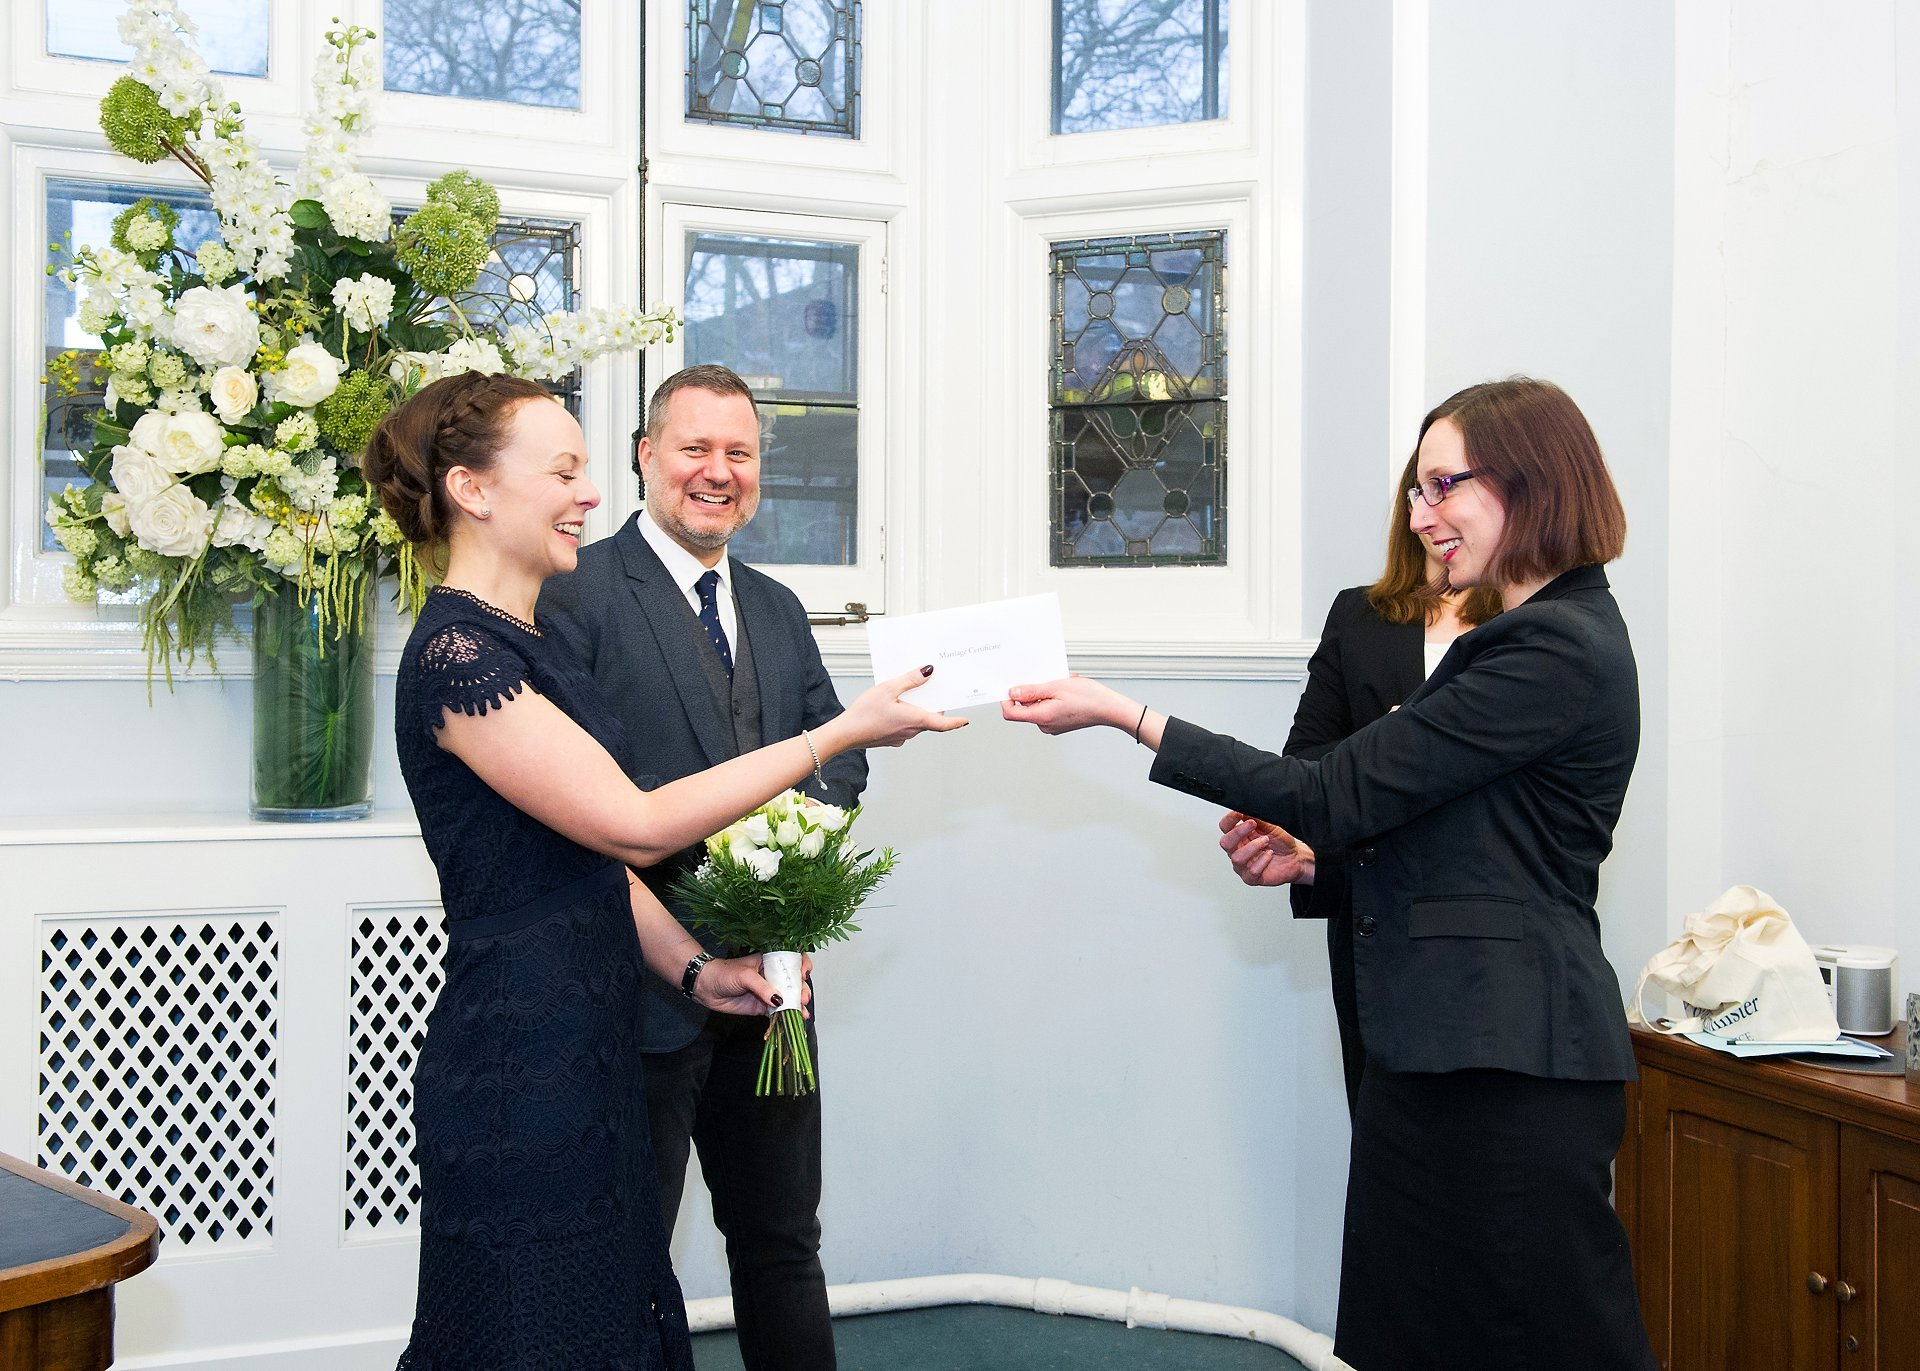 the registrar hands over the wedding certificate at this westminster wedding